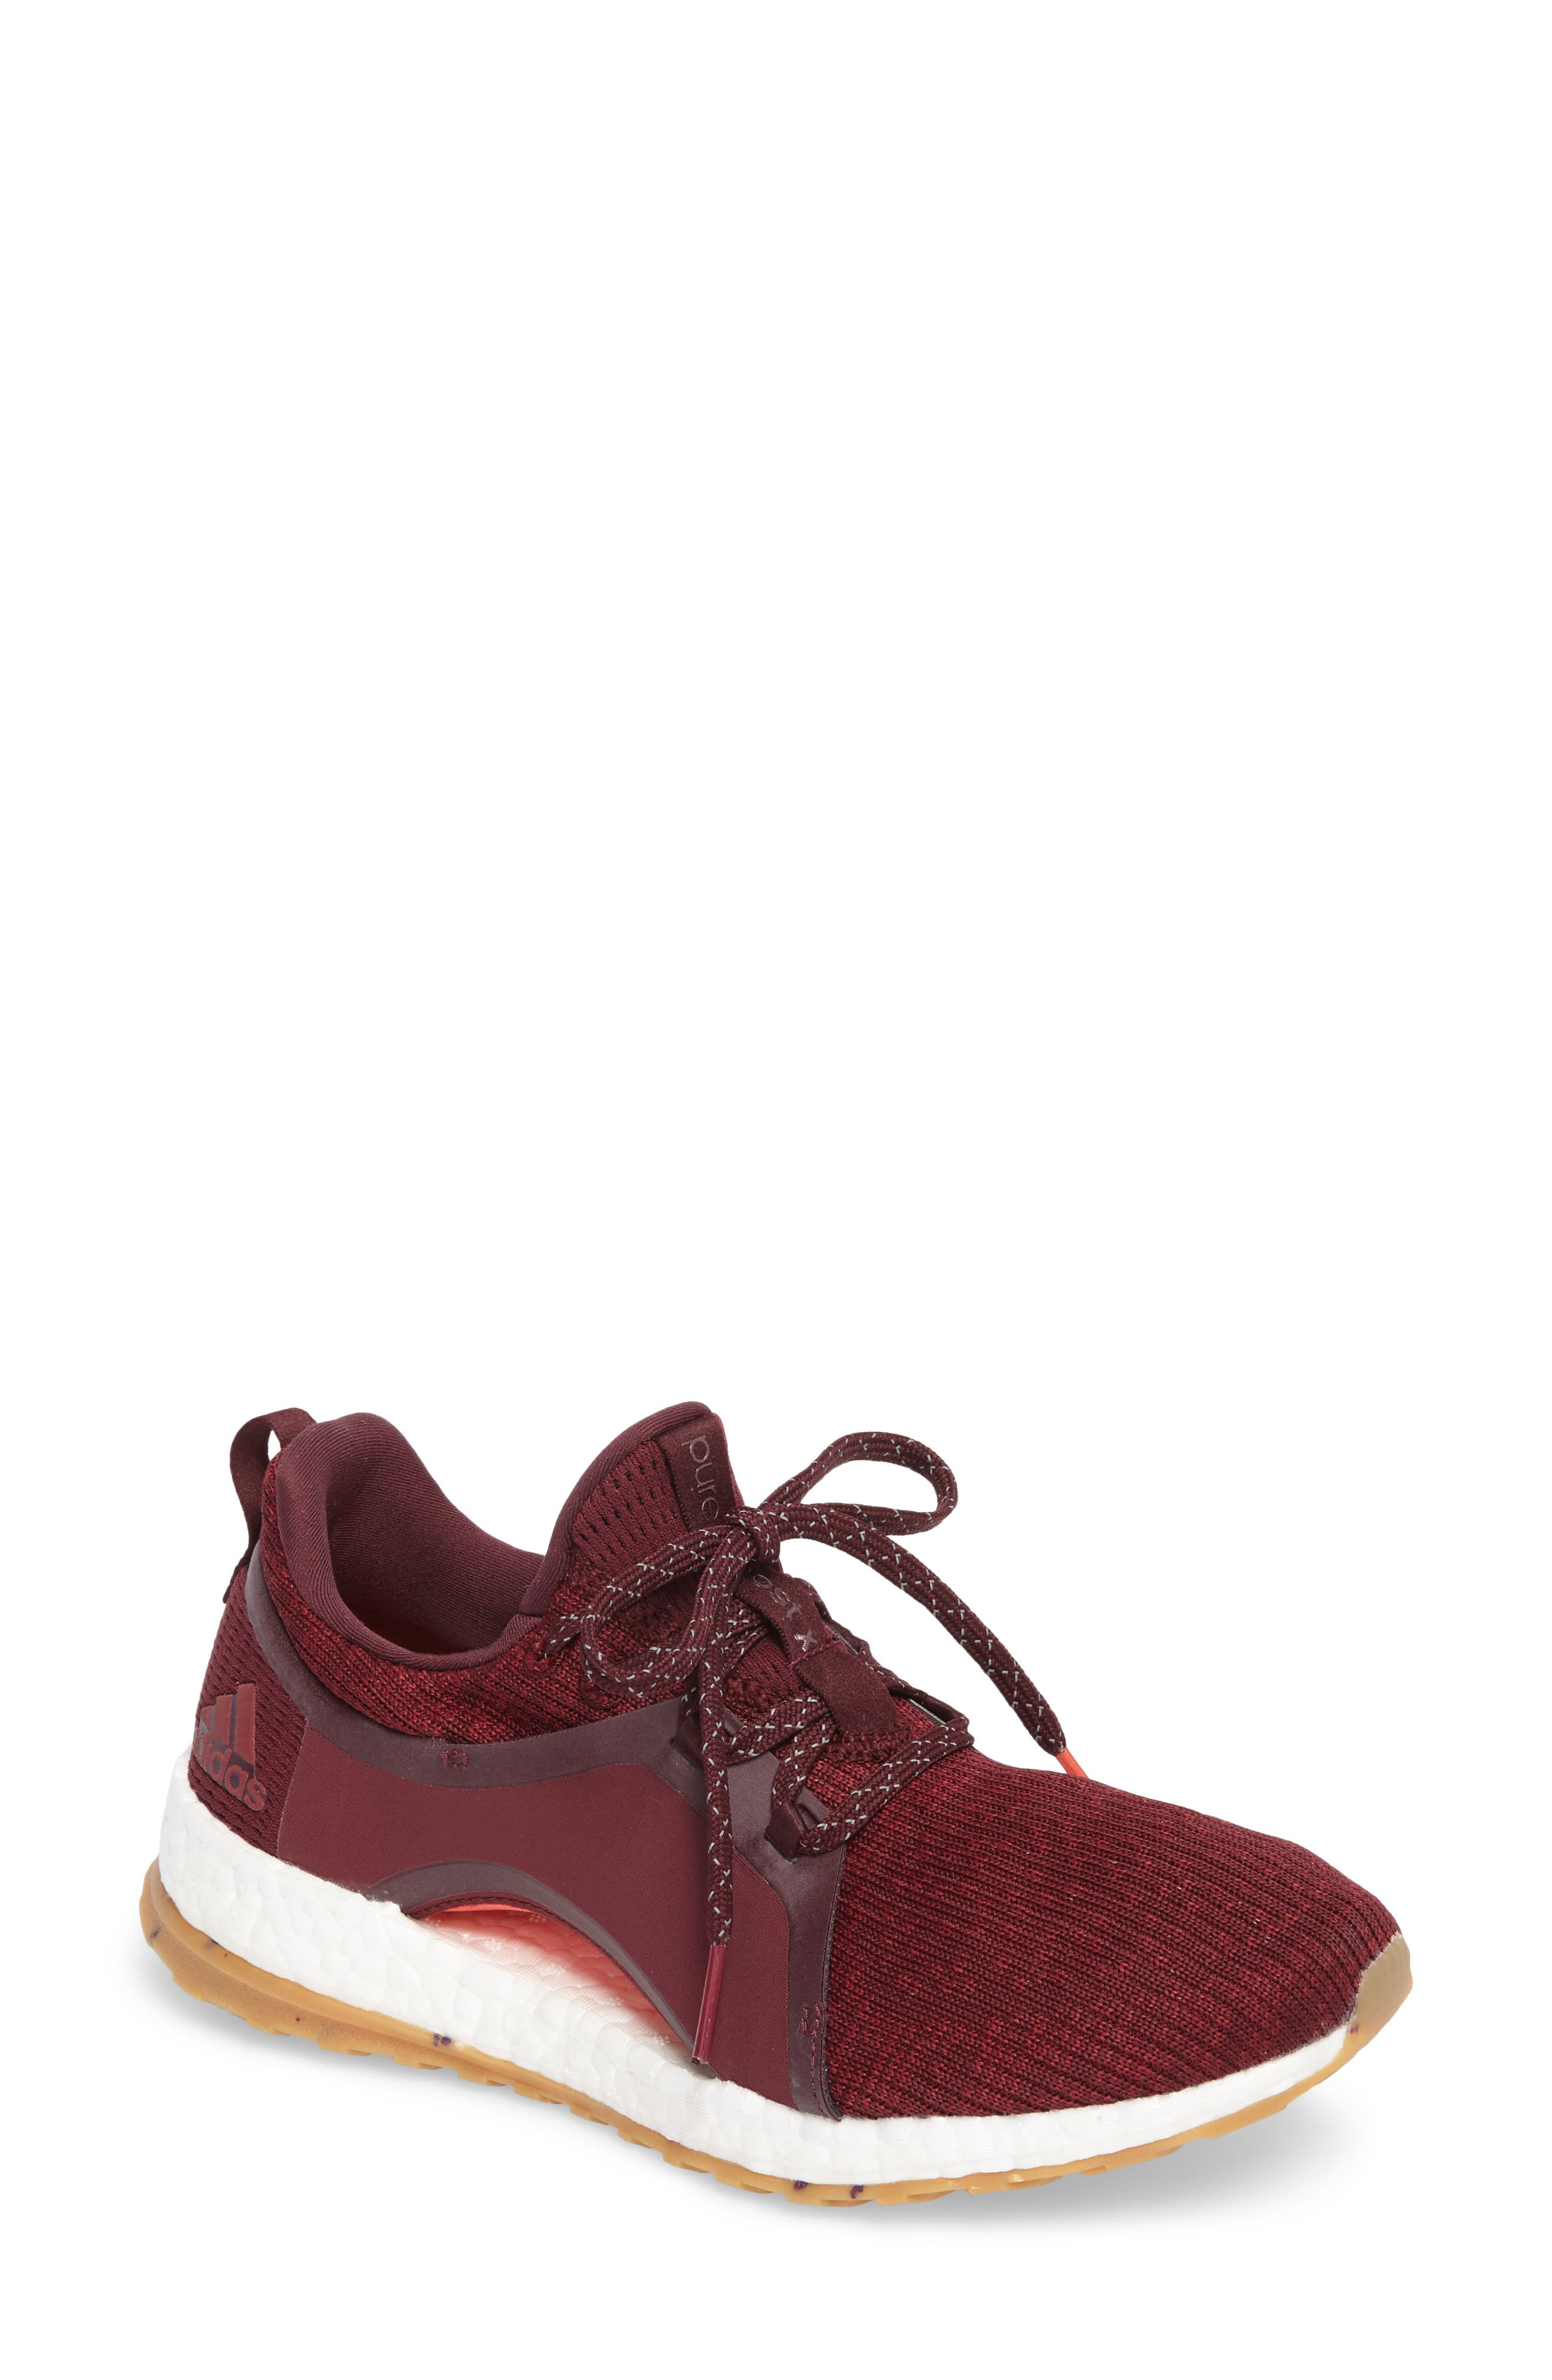 PureBoost X ATR Running Shoe,                         Main,                         color, Red Night/ Ruby/ Easy Coral